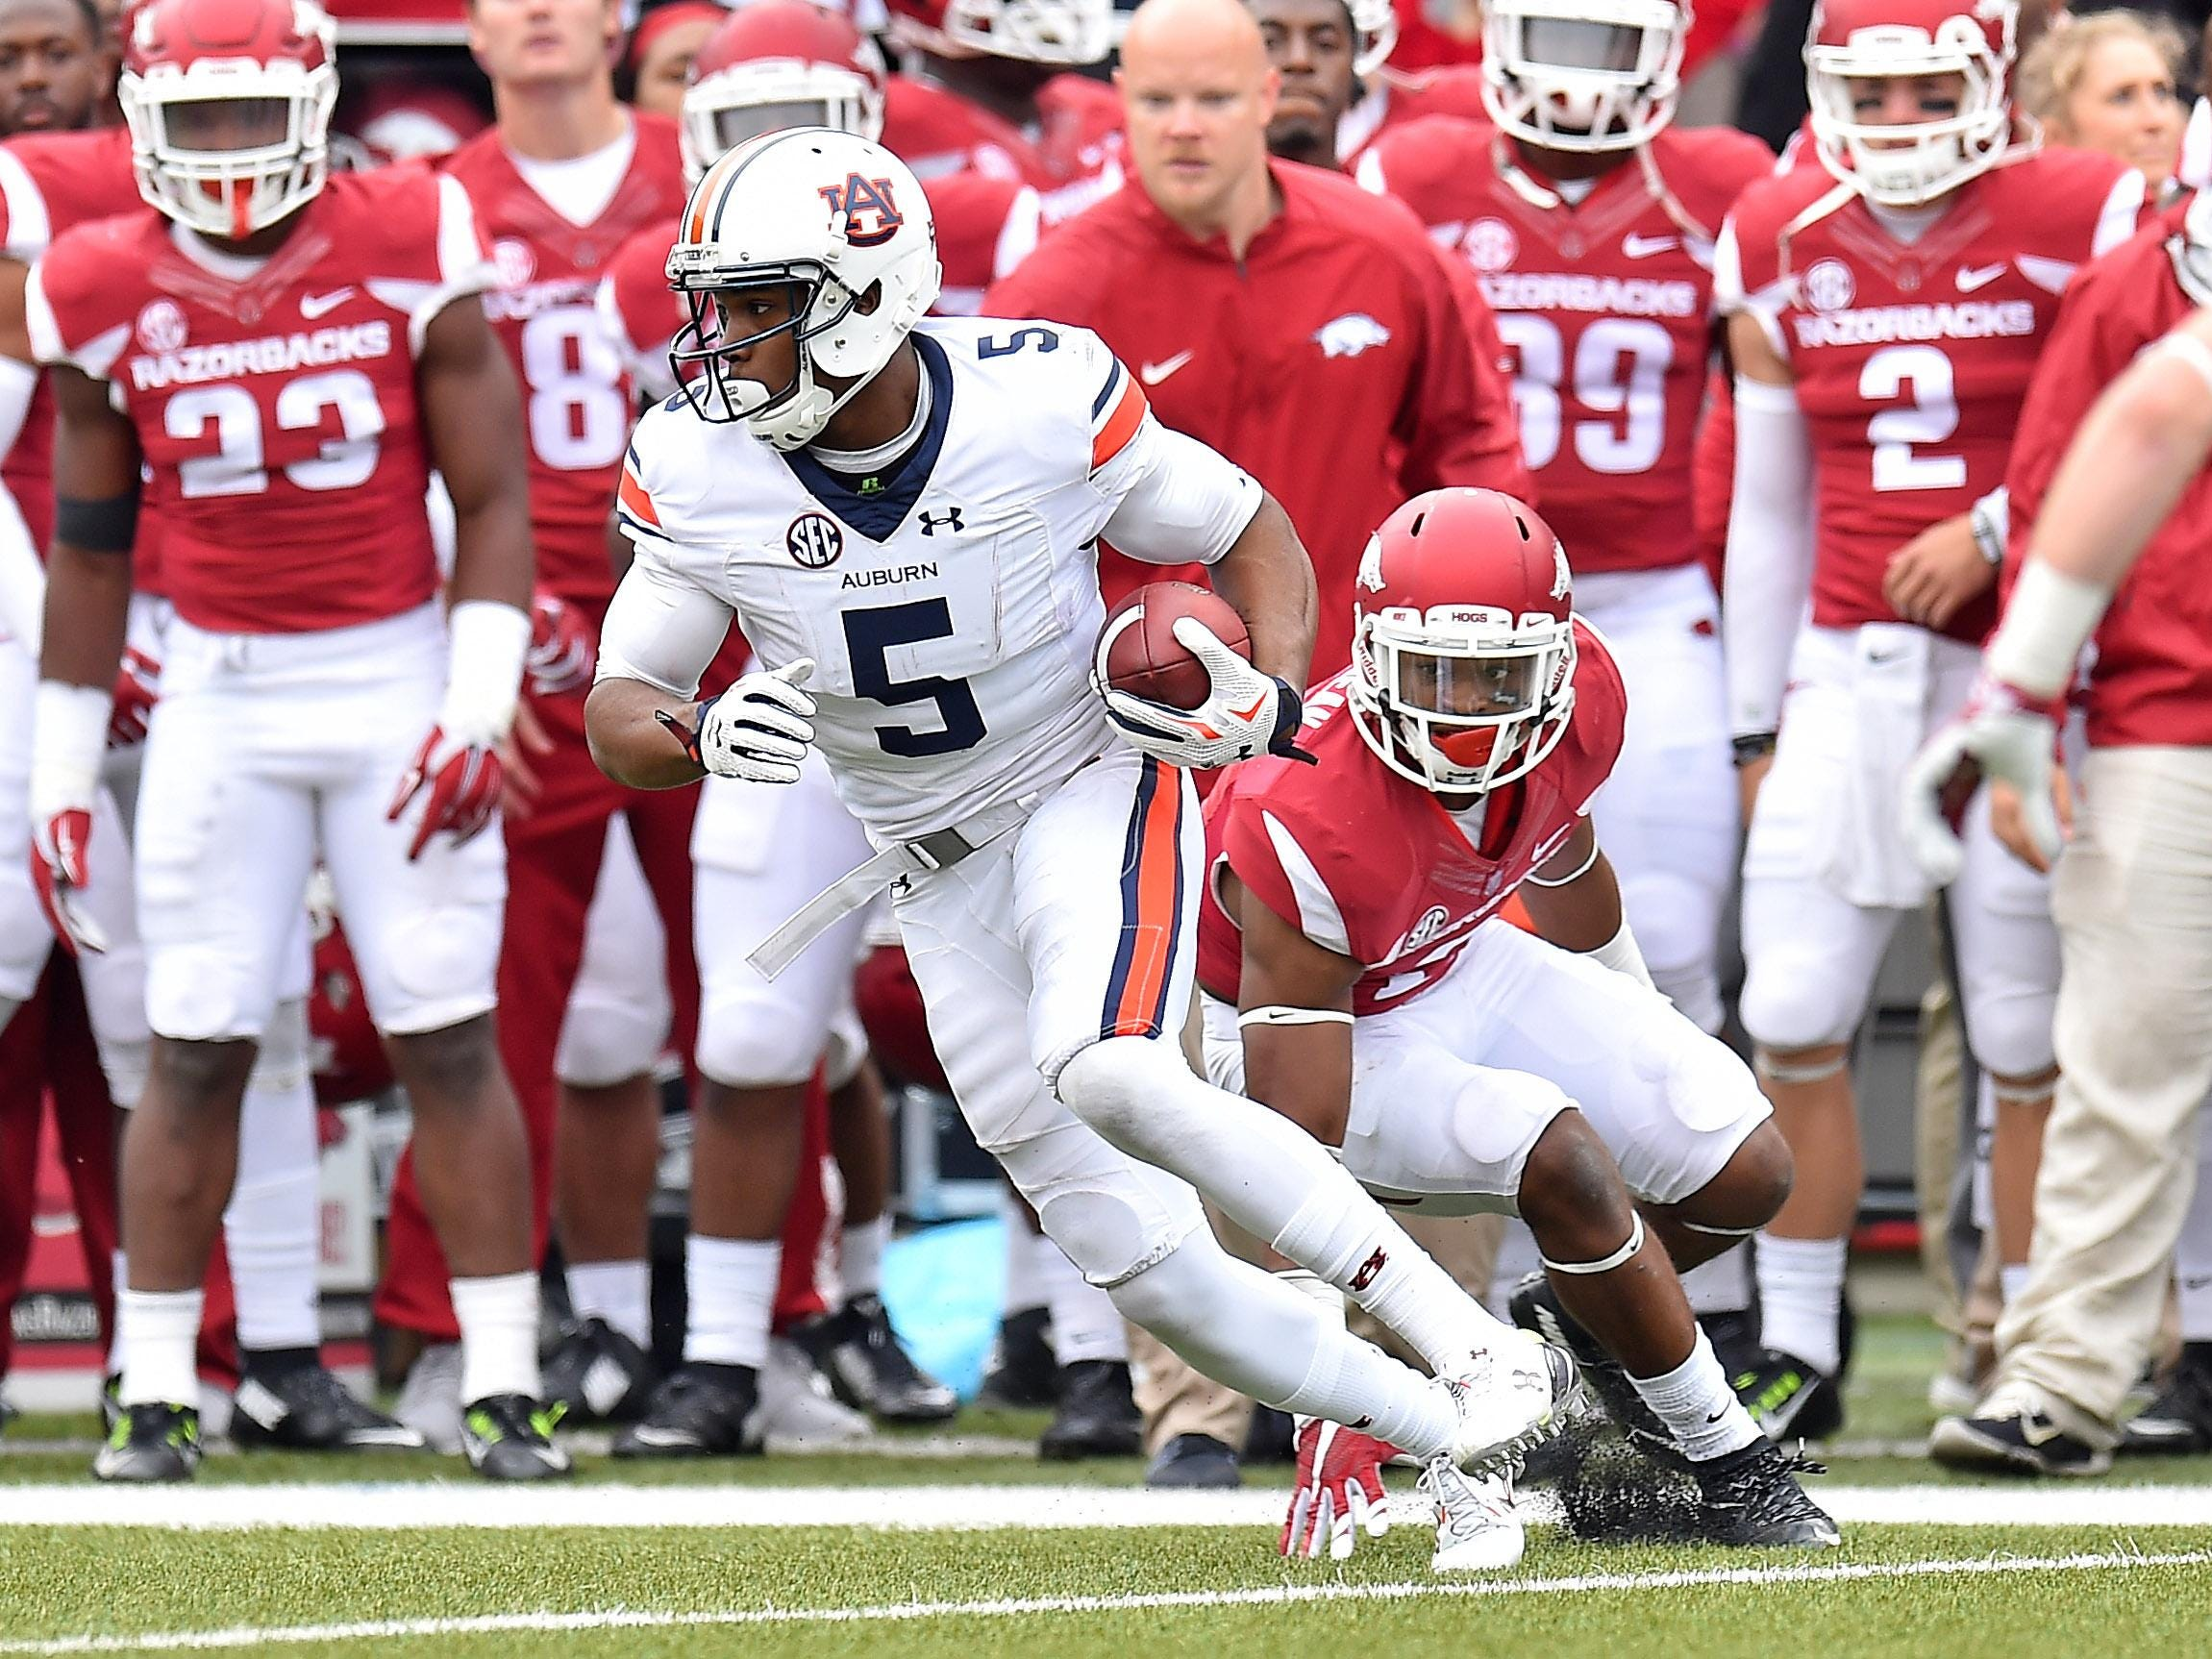 Aubun wide receiver Ricardo Louis and the Tigers try to bounce back from a tough loss against Arkansas.